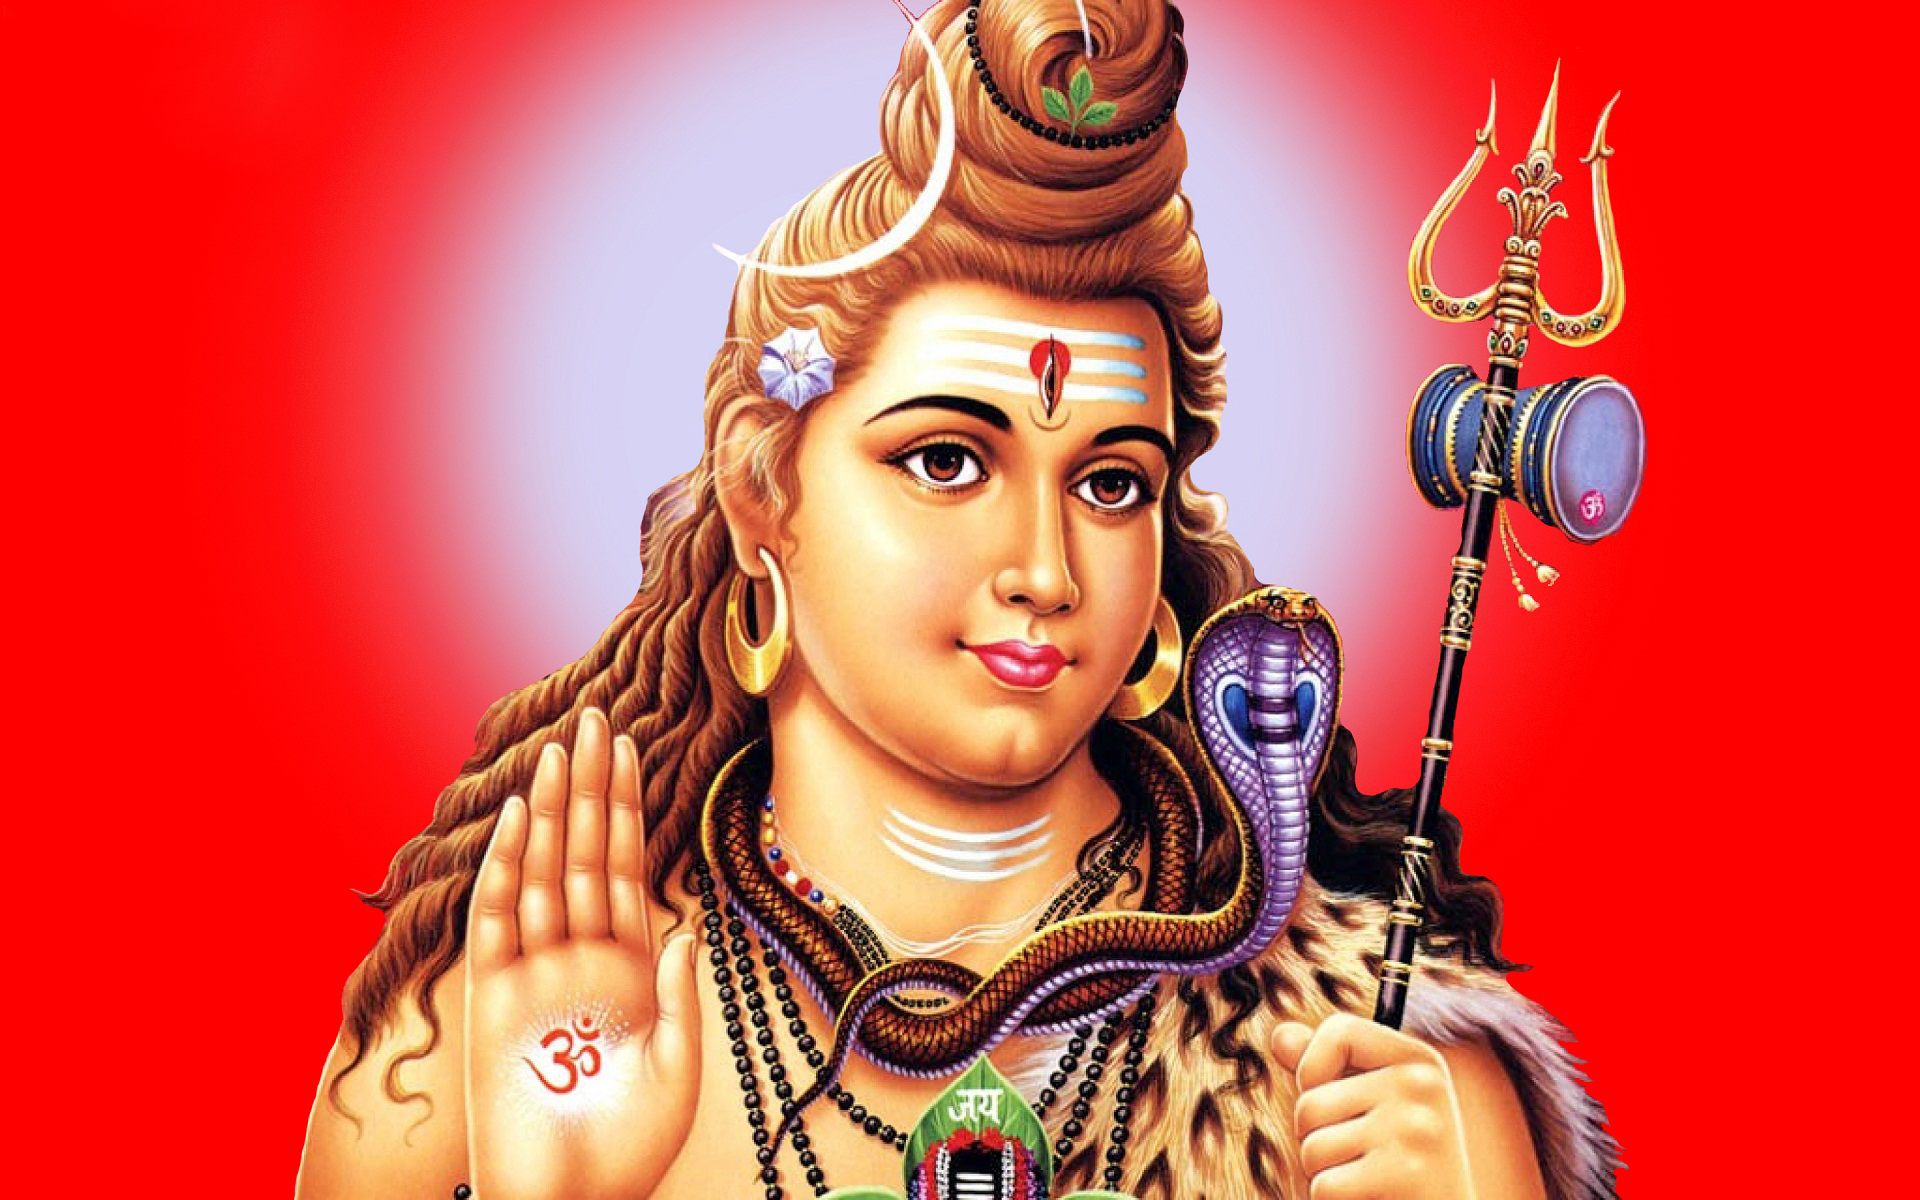 Lord Shiva Full Hd 1080p Photo: Lord Shiva HD Wallpapers